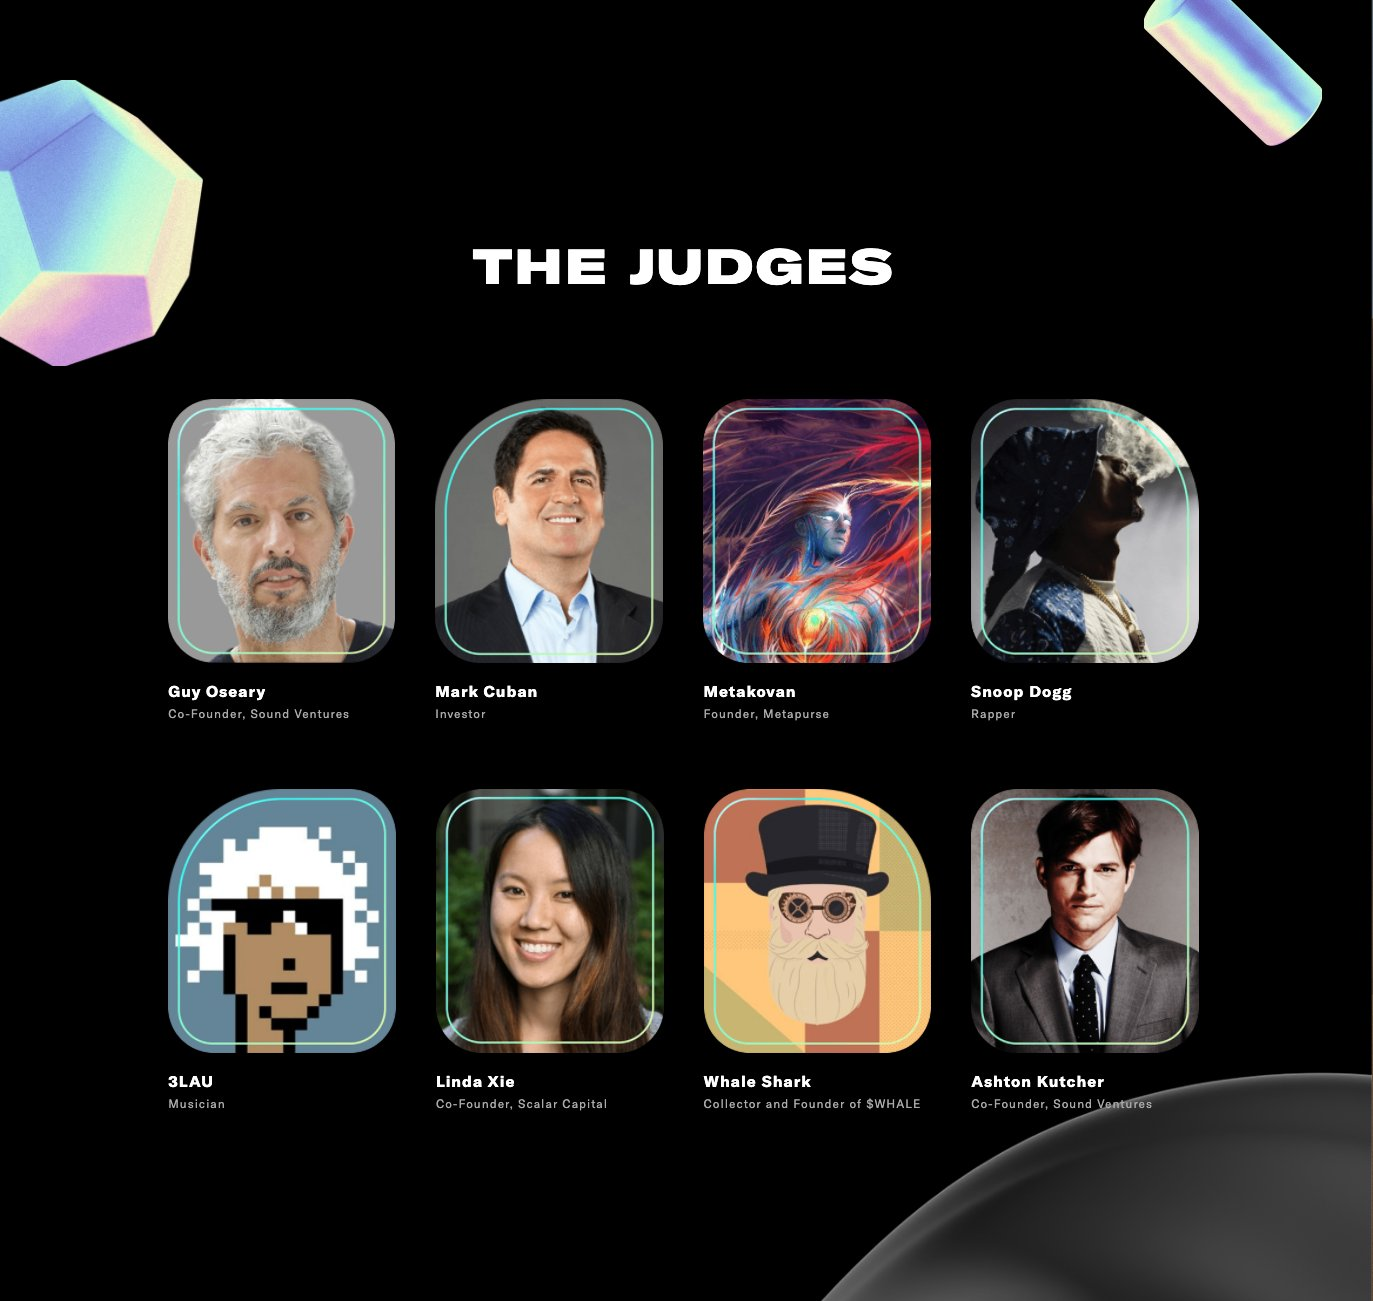 Celebrity VC fund unveils $1M NFT contest judged by Snoop Dogg and Mark Cuban